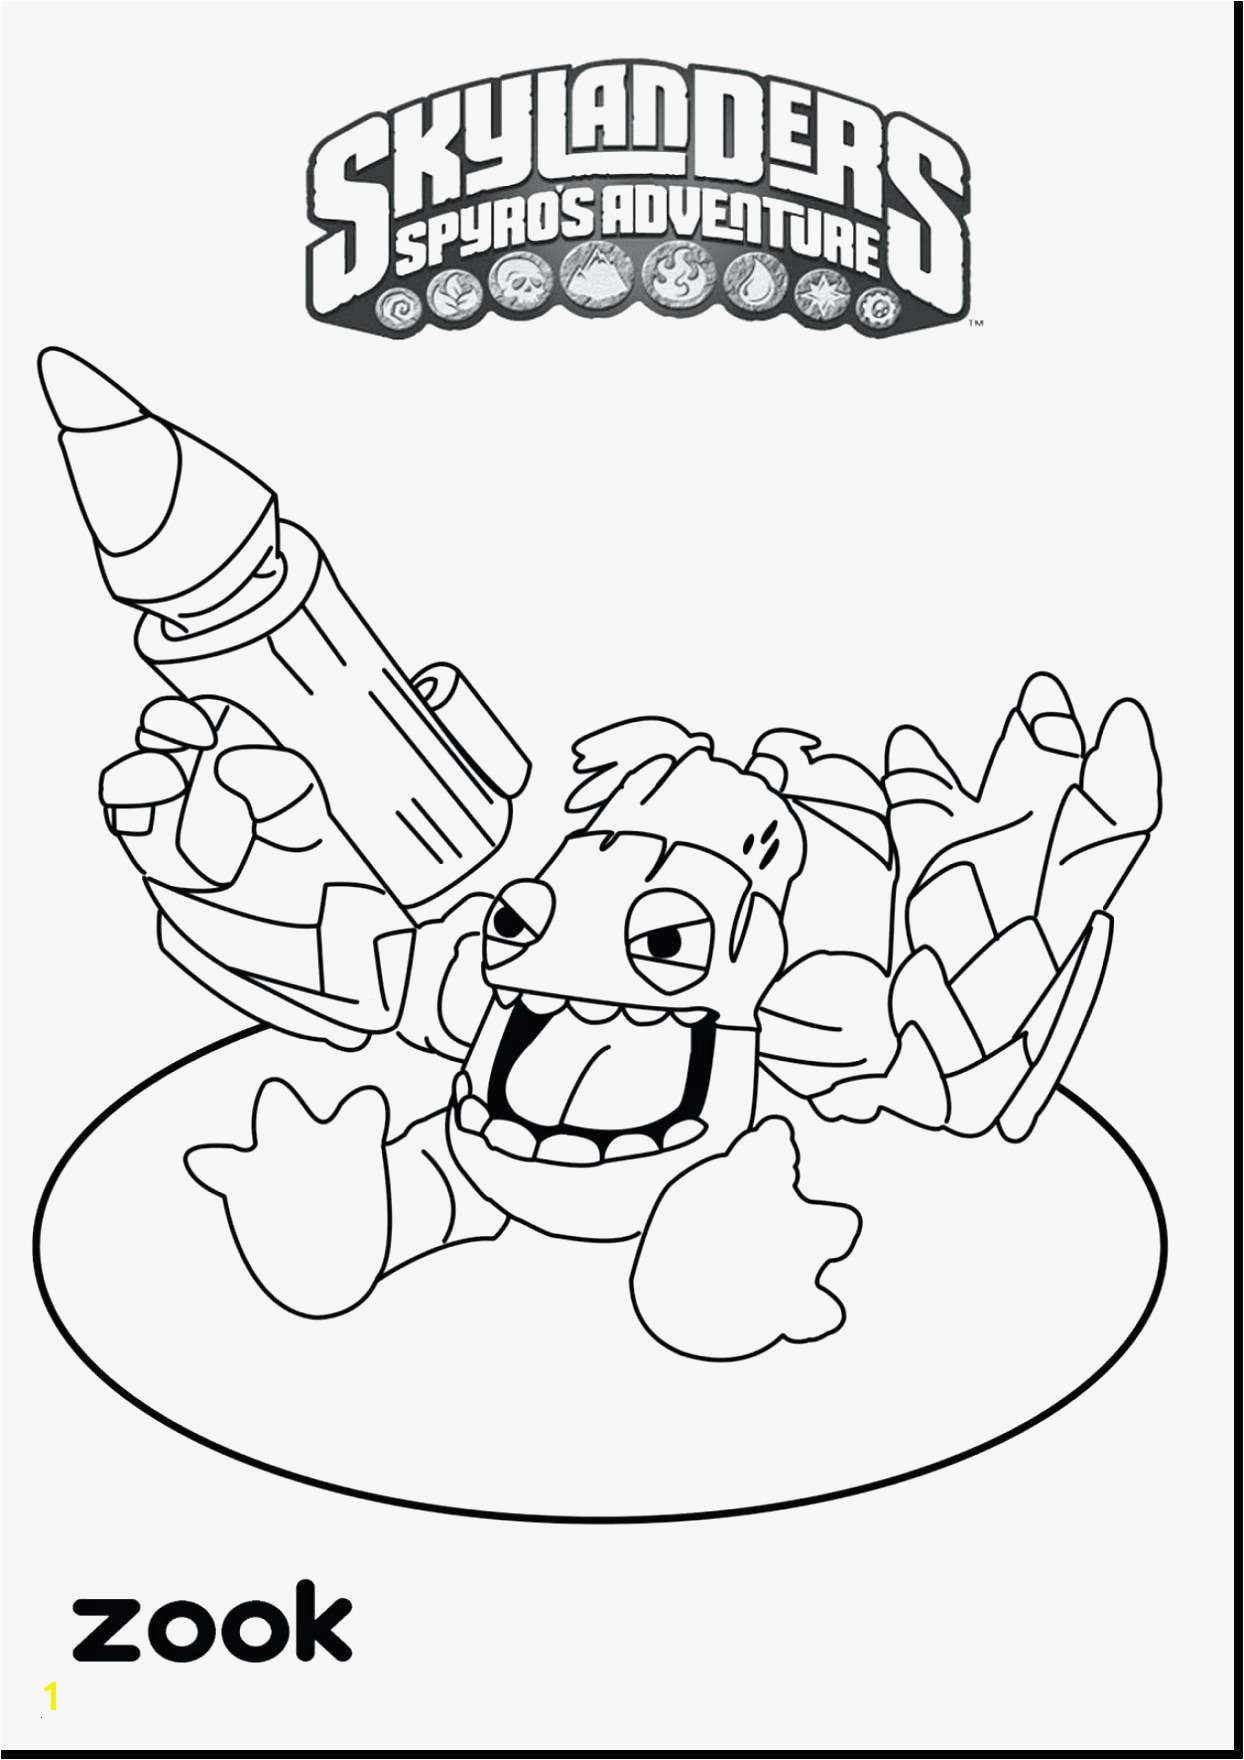 Cool Coloring Page Inspirational Witch Coloring Pages New Crayola Pages 0d Coloring Page 29 Virtual Christmas Coloring Pages from small